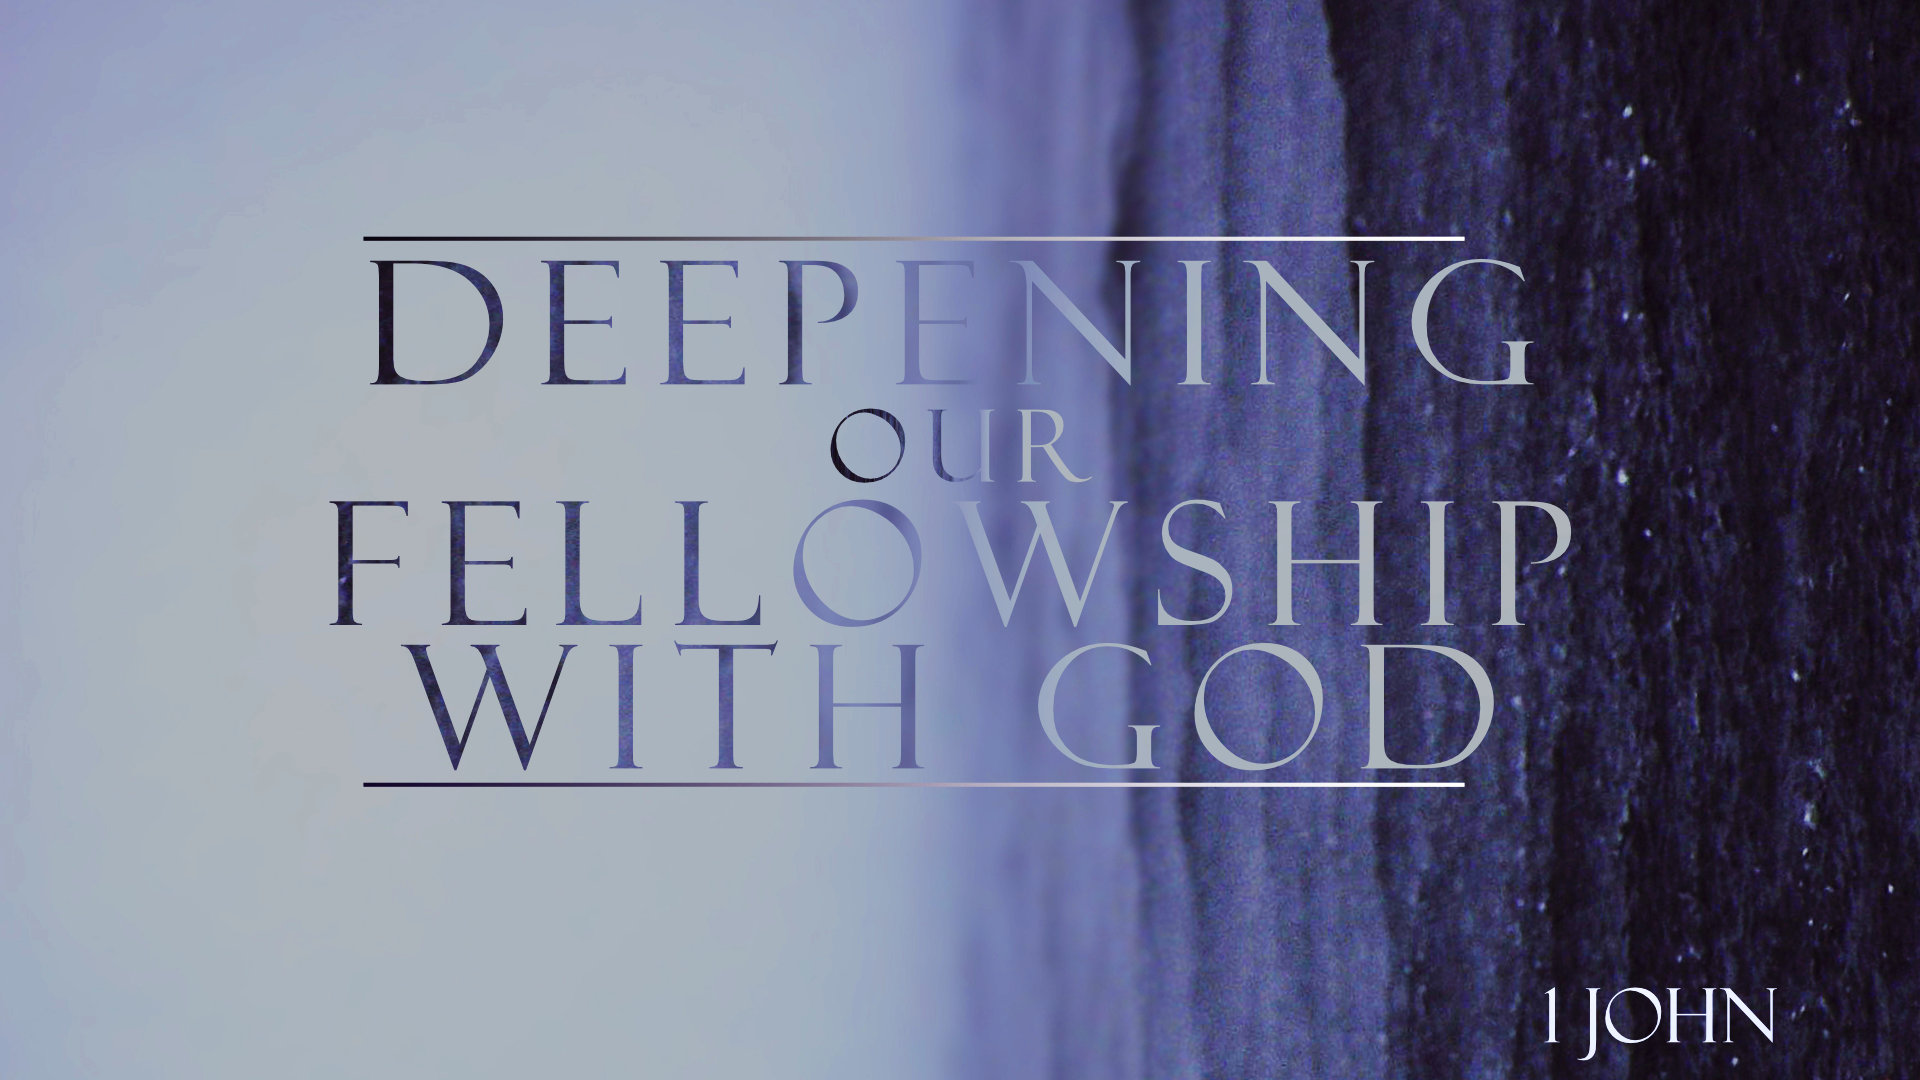 Deepening Our Fellowship With God • Jan. 22 - Feb. 26, 2016